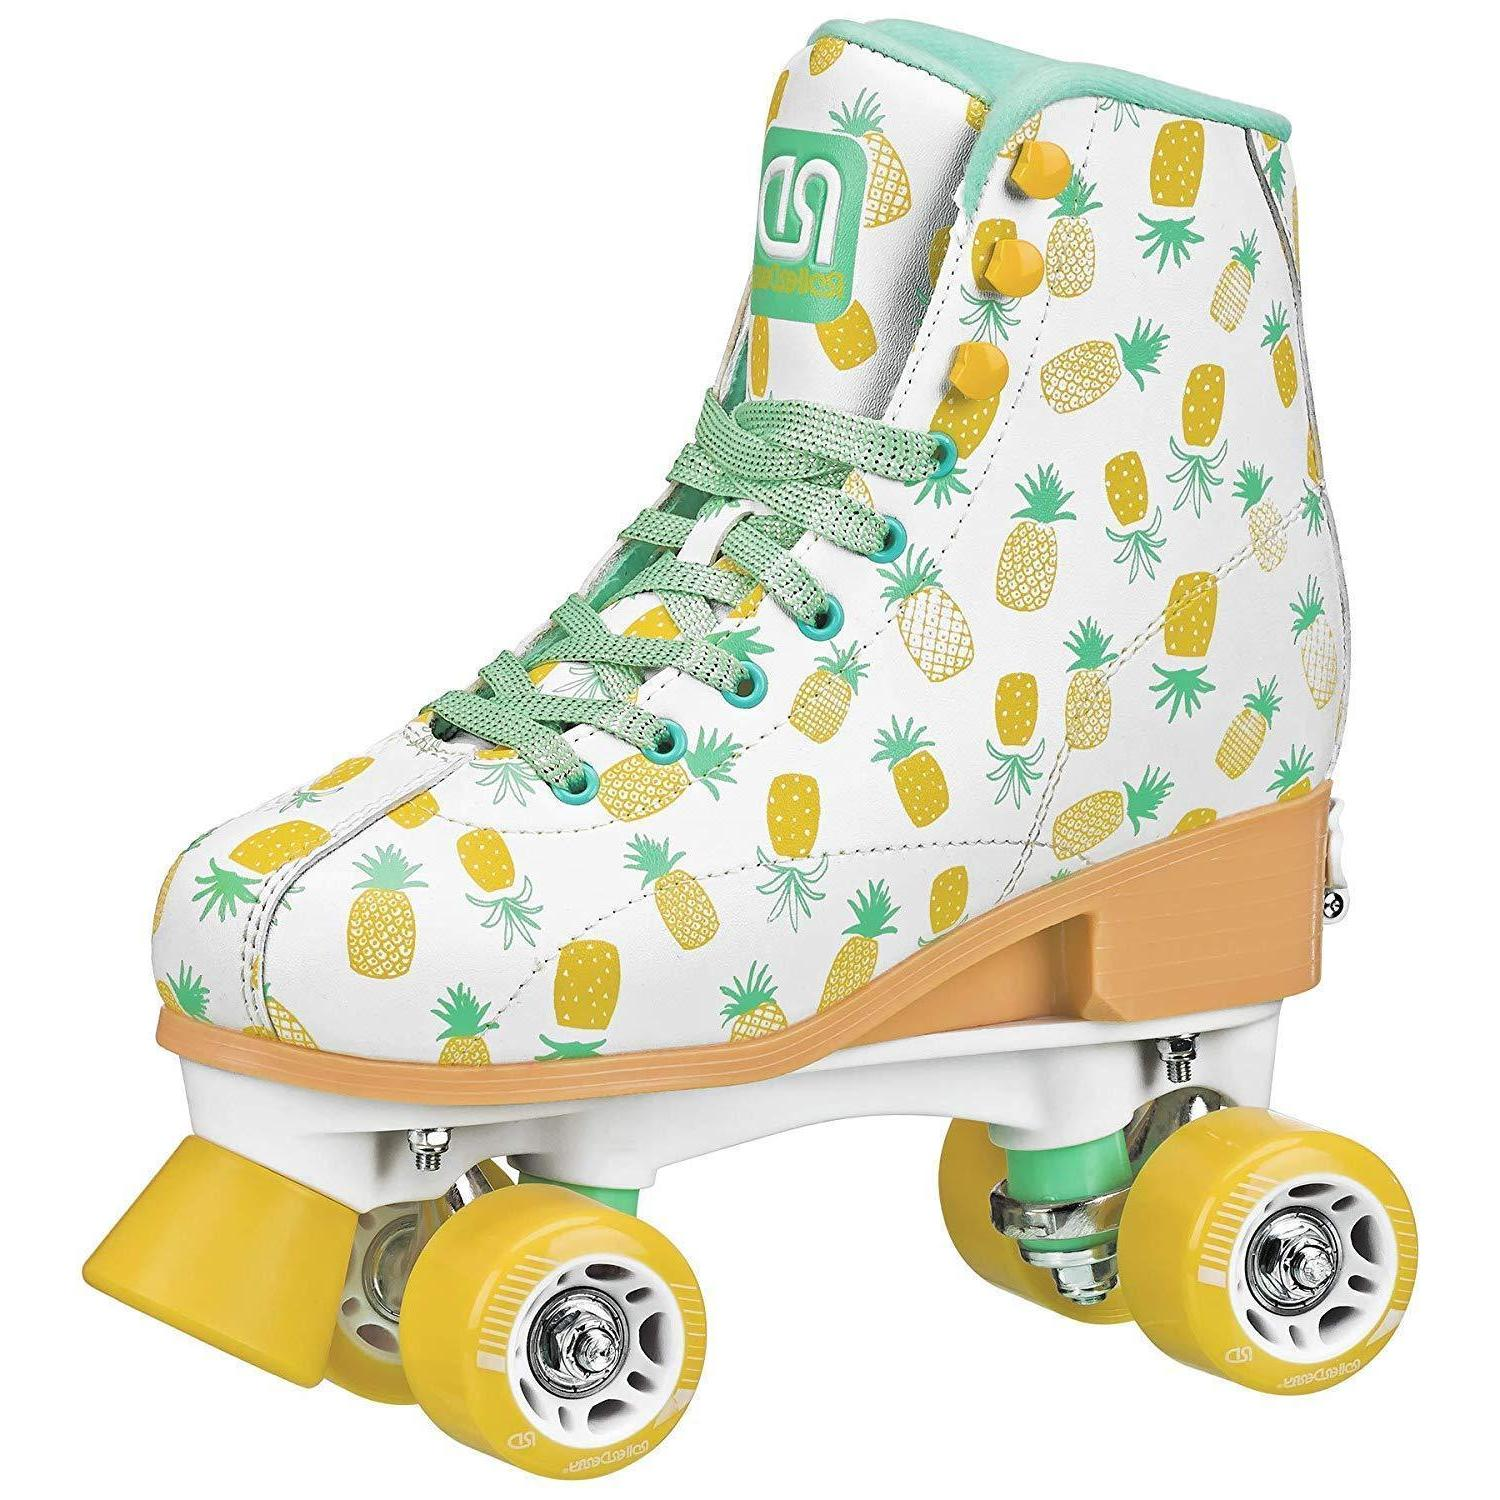 new release candi girl adjustable lucy skates